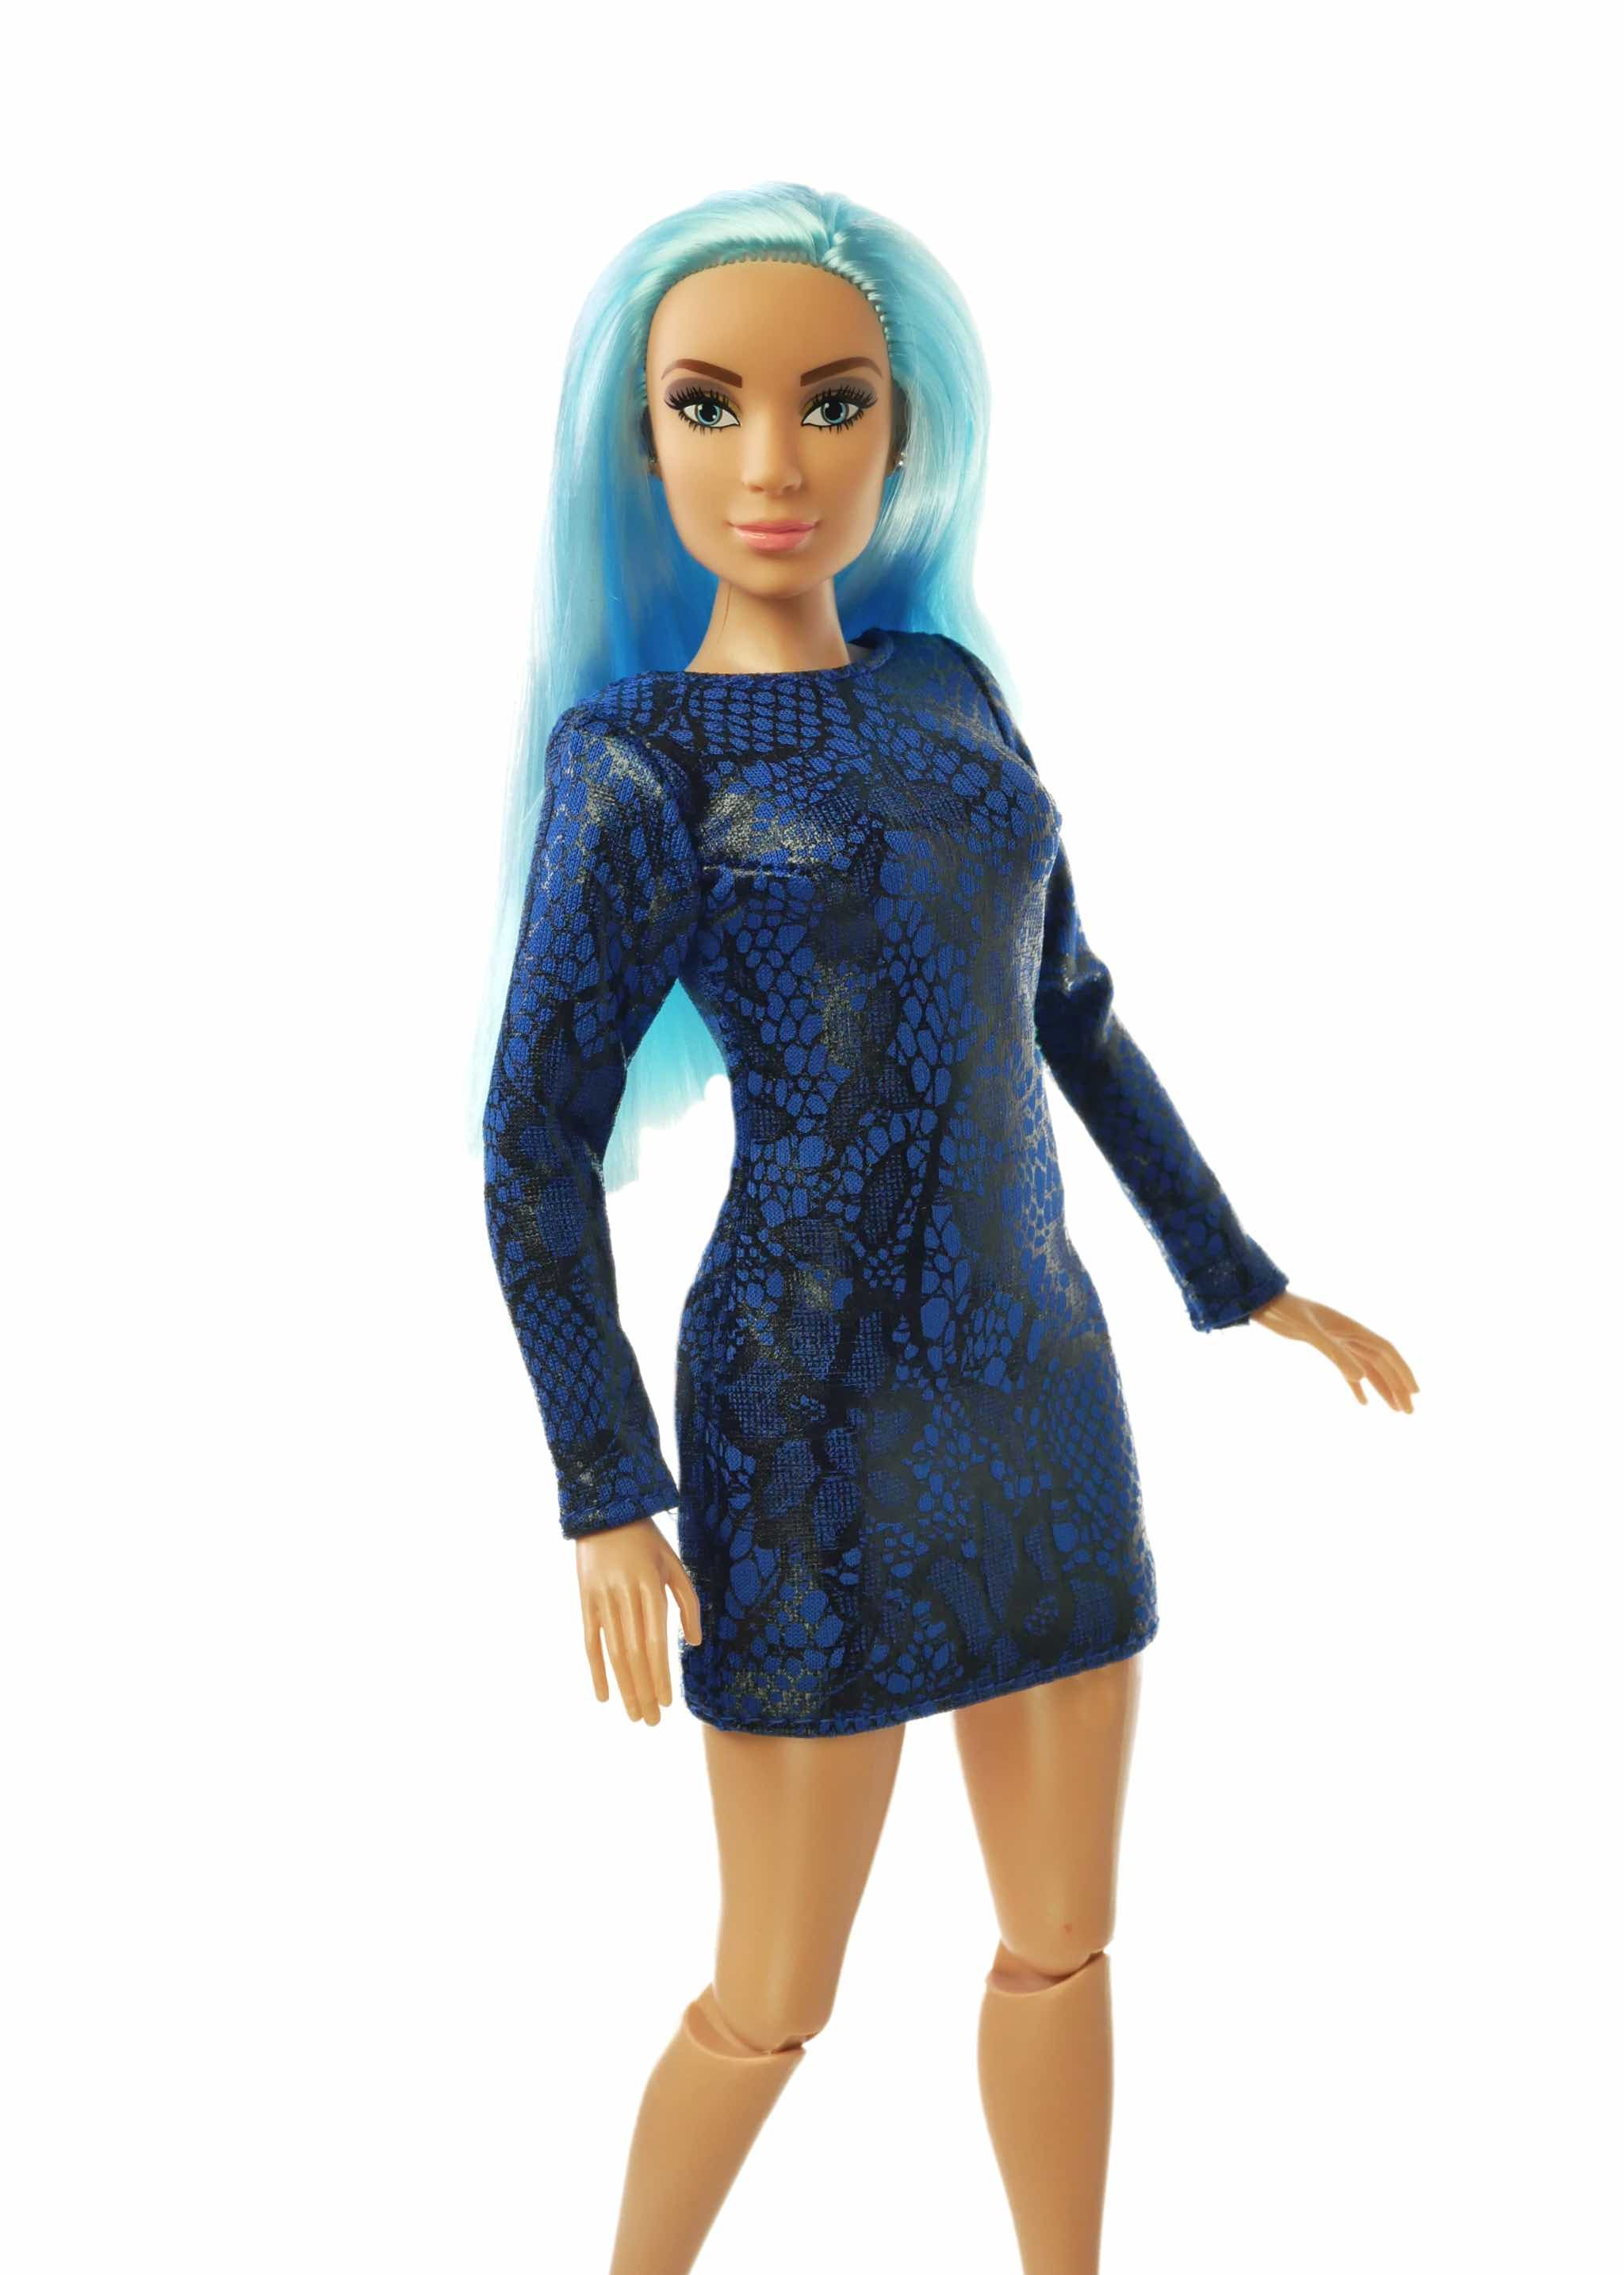 blue hair fashion doll wearing dark blue dress.